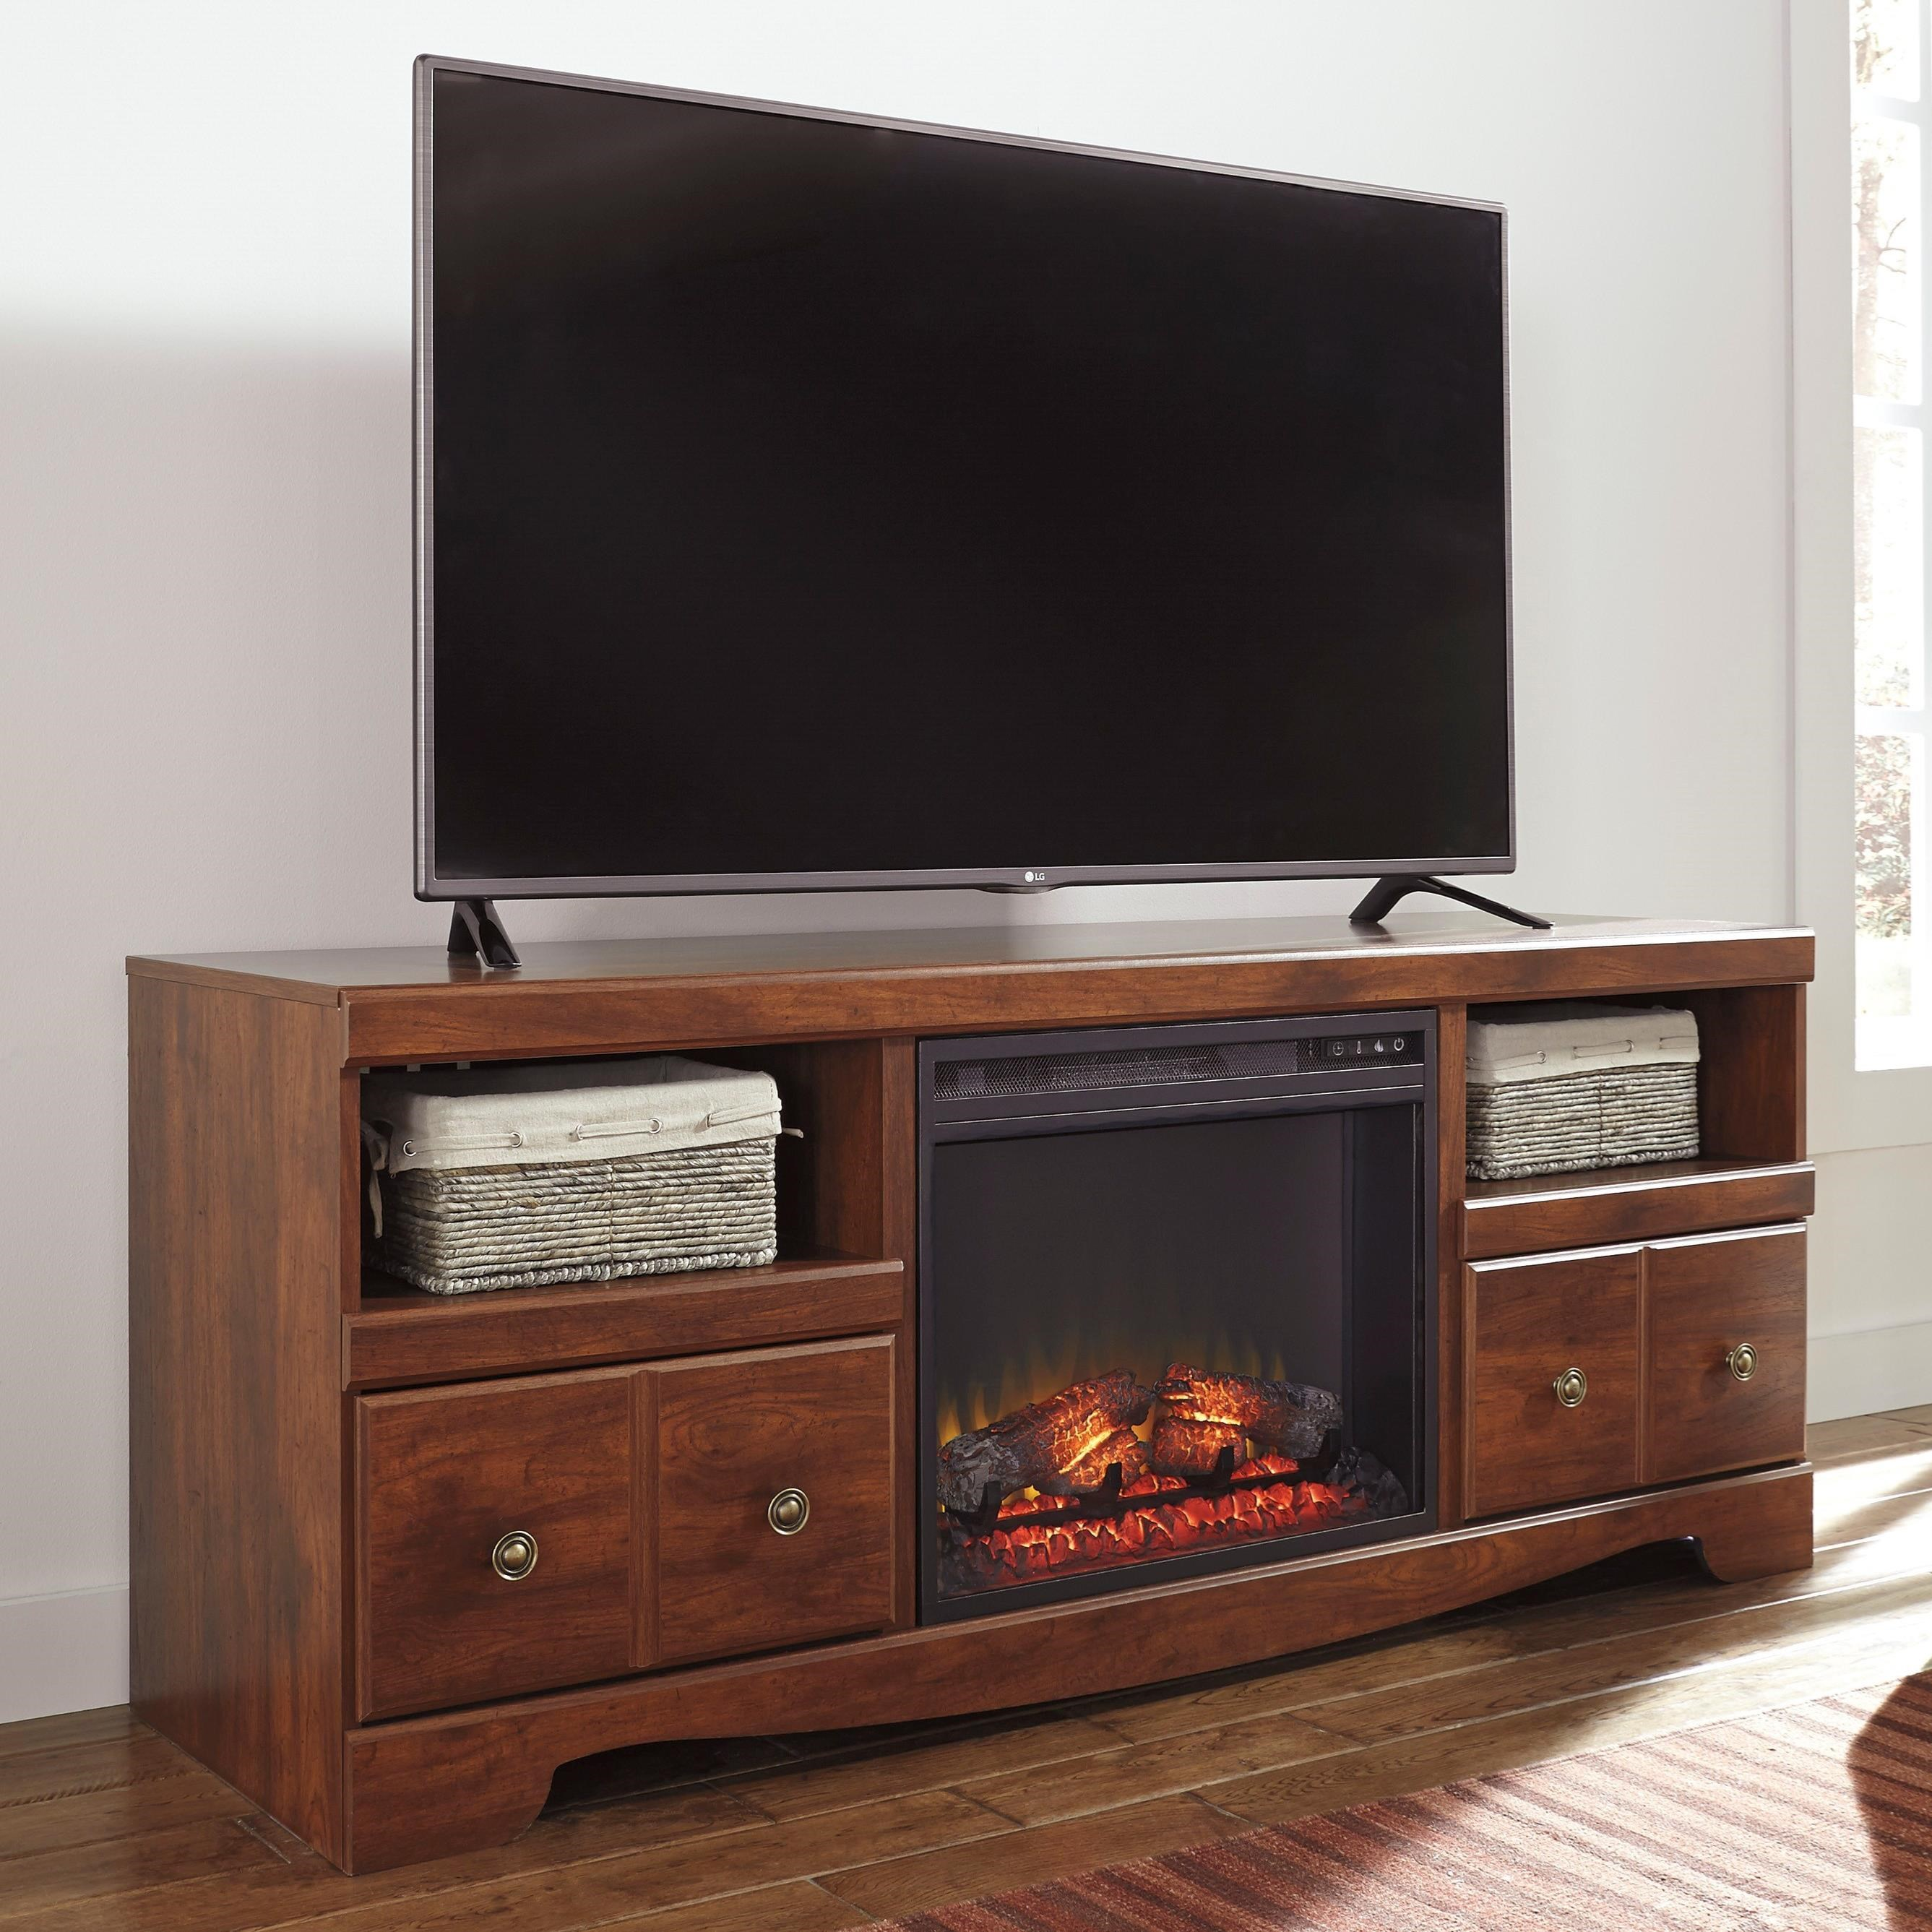 Signature design by ashley brittberg cherry finish large for Ivan smith furniture